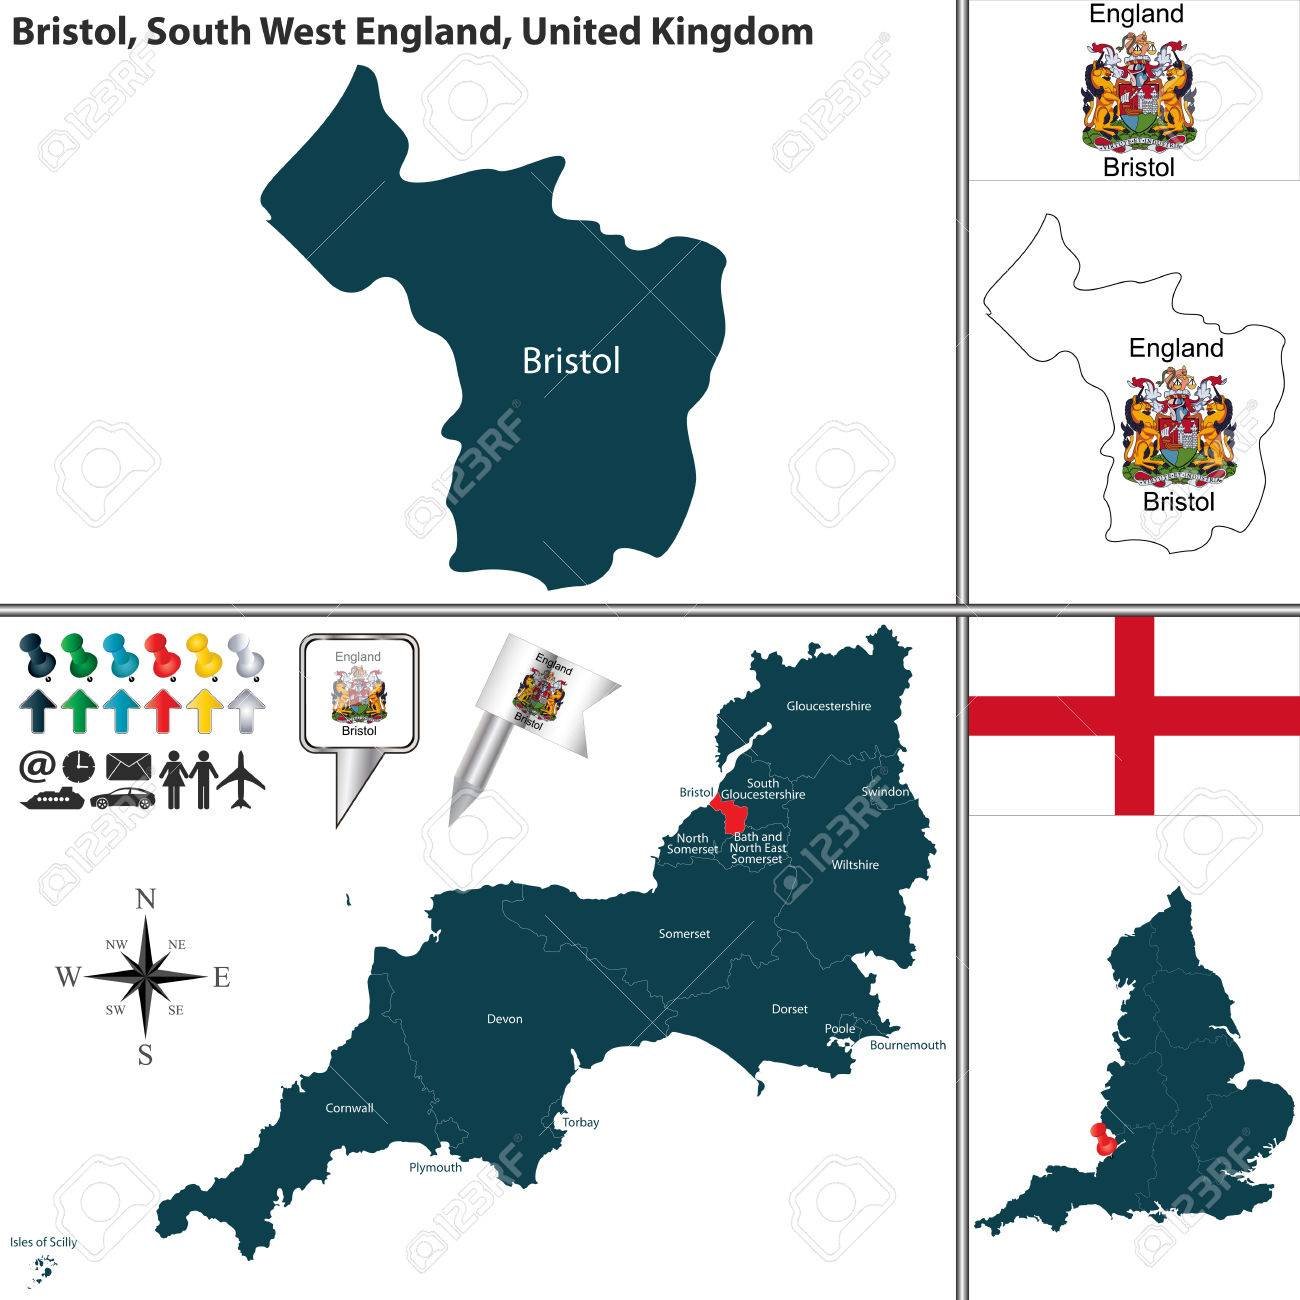 Bristol On The Map Of England.Map Of Bristol In South West England United Kingdom With Regions